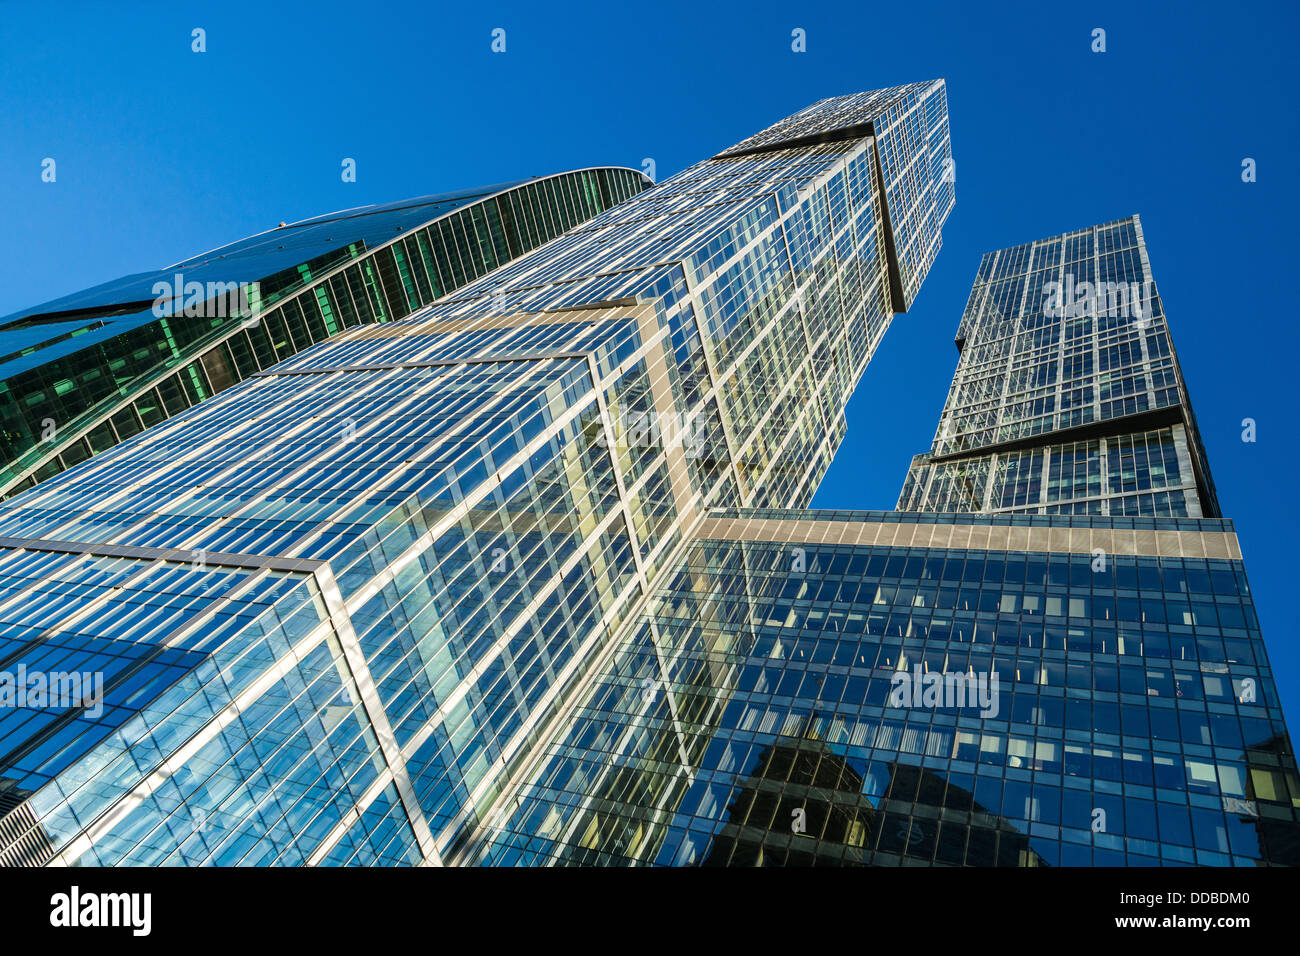 Moscow International Business Center (Russia) - Stock Image